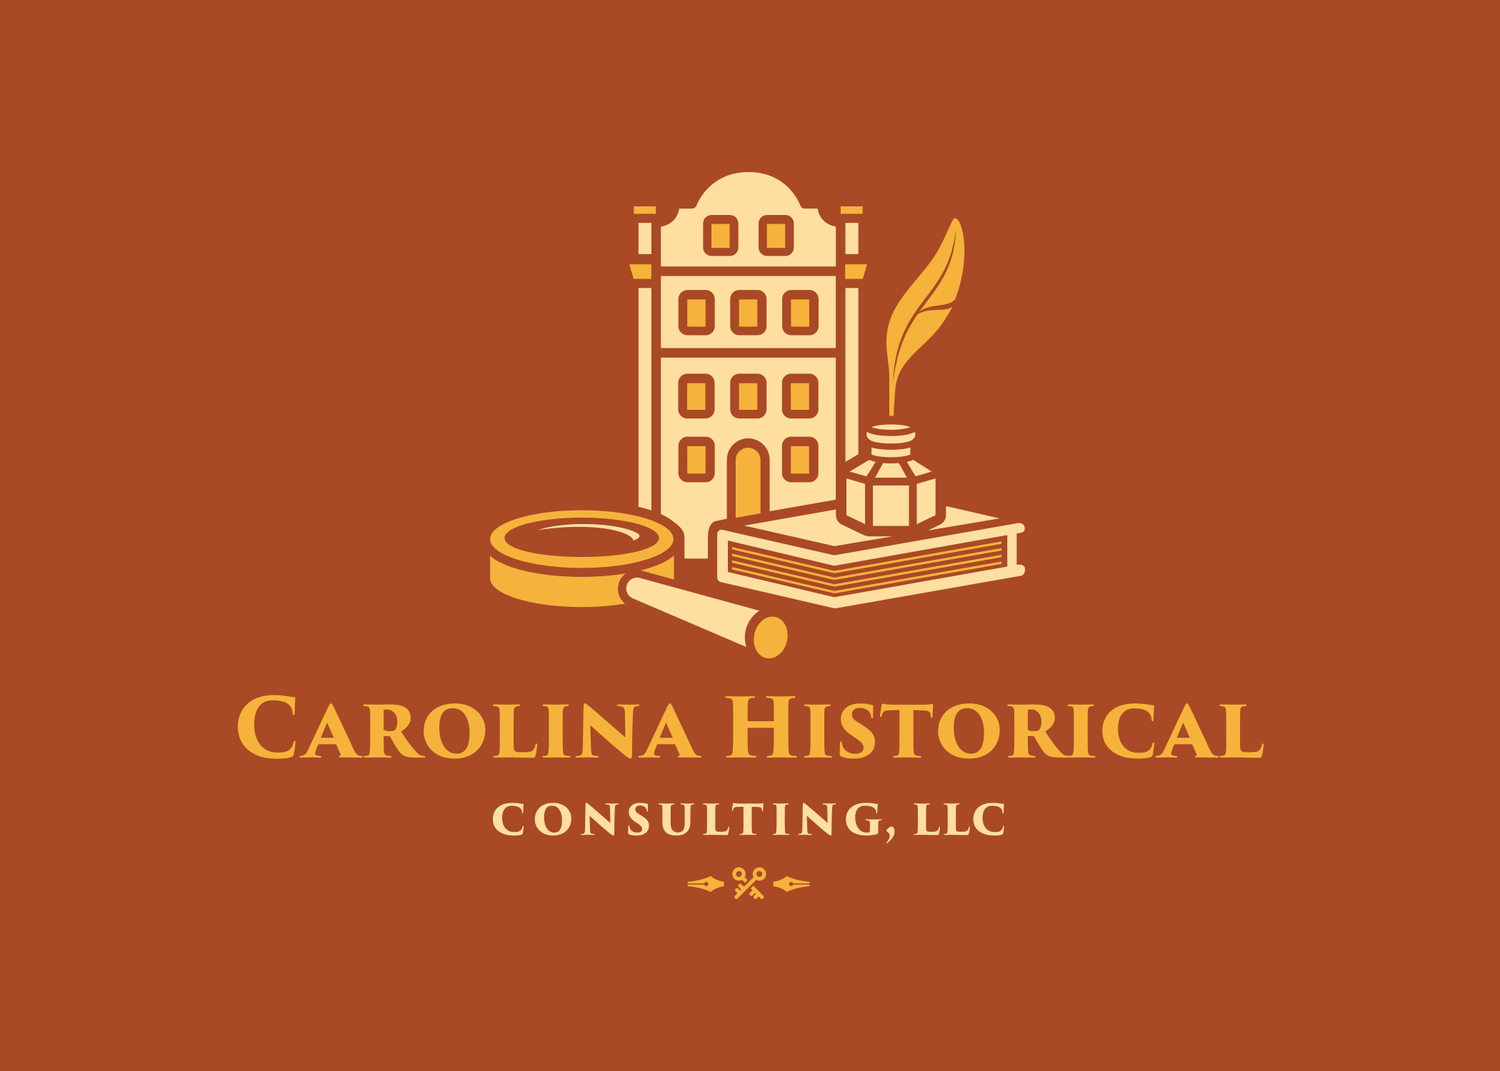 Carolina Historical Consulting, LLC